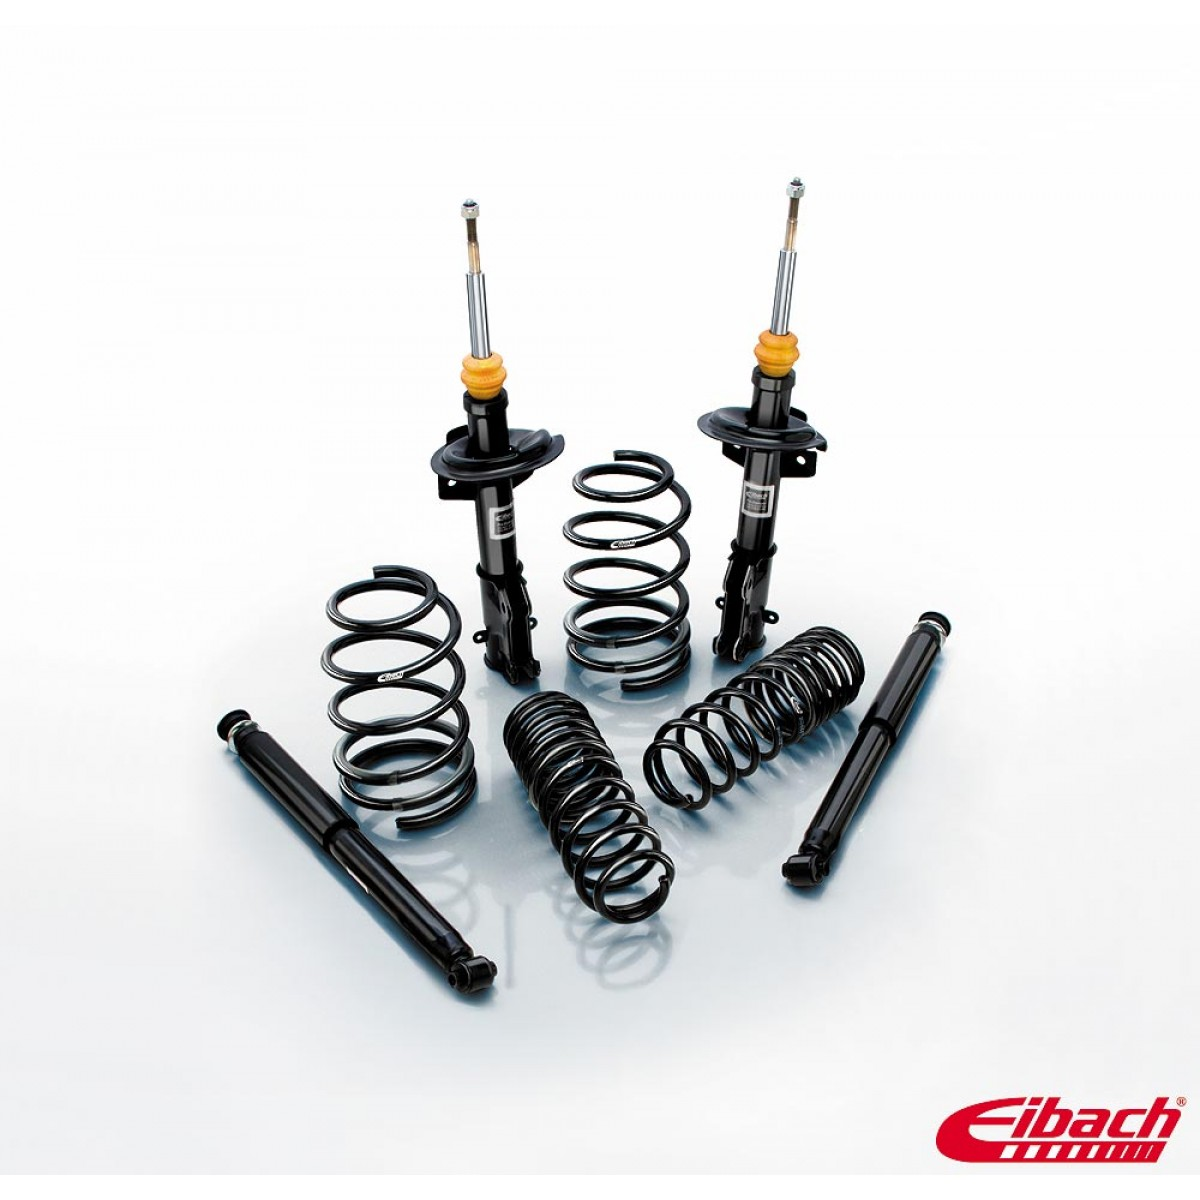 2005 2009 ford mustang pro system pro kit lowering springs pro damper shocks eibach. Black Bedroom Furniture Sets. Home Design Ideas